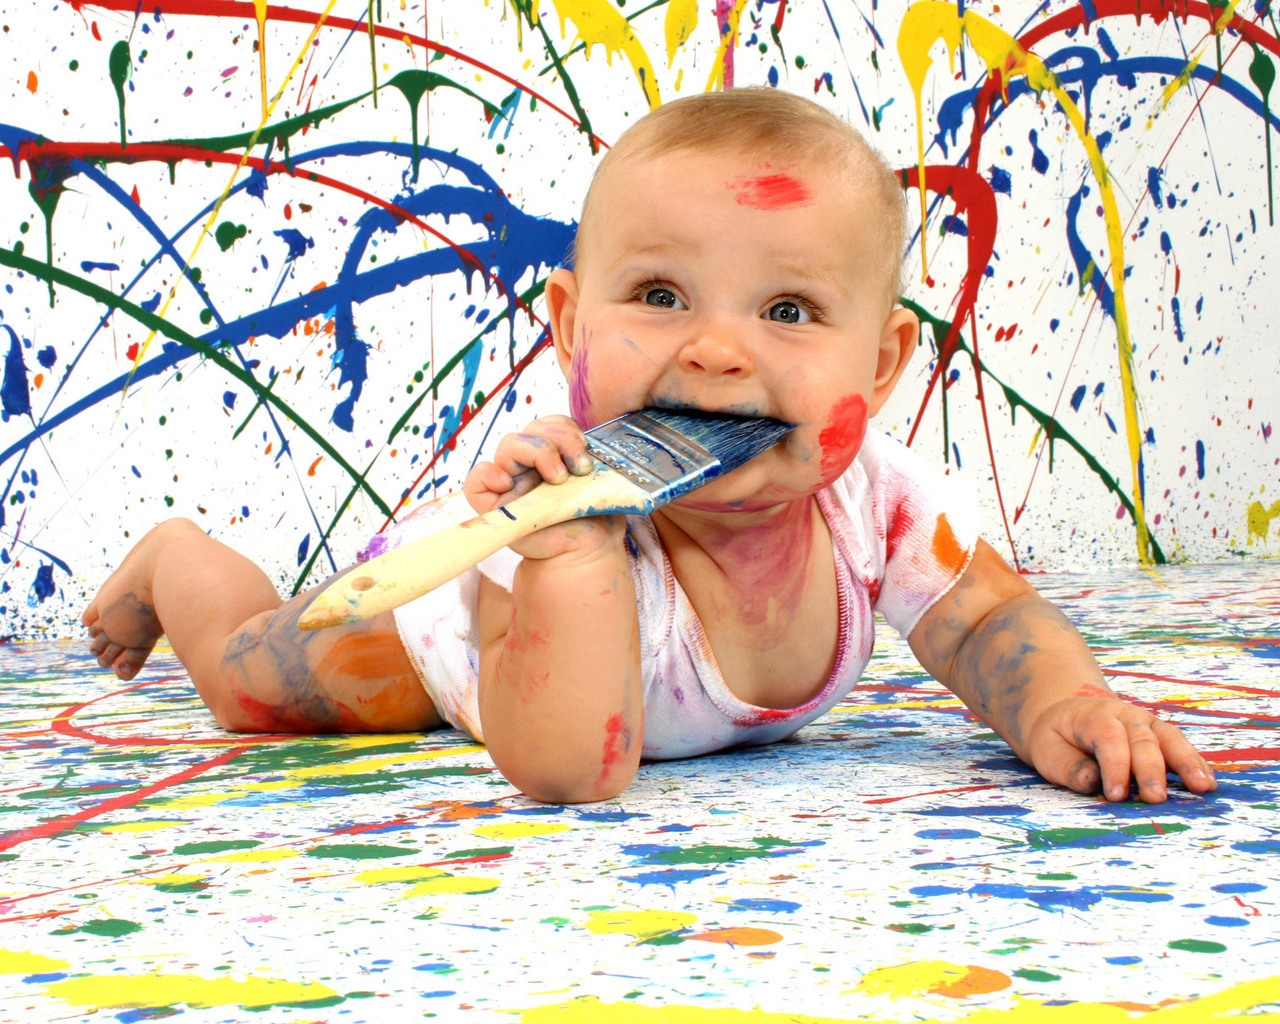 baby_amusing_paint_dirty_funny_bully_11147_1280x1024